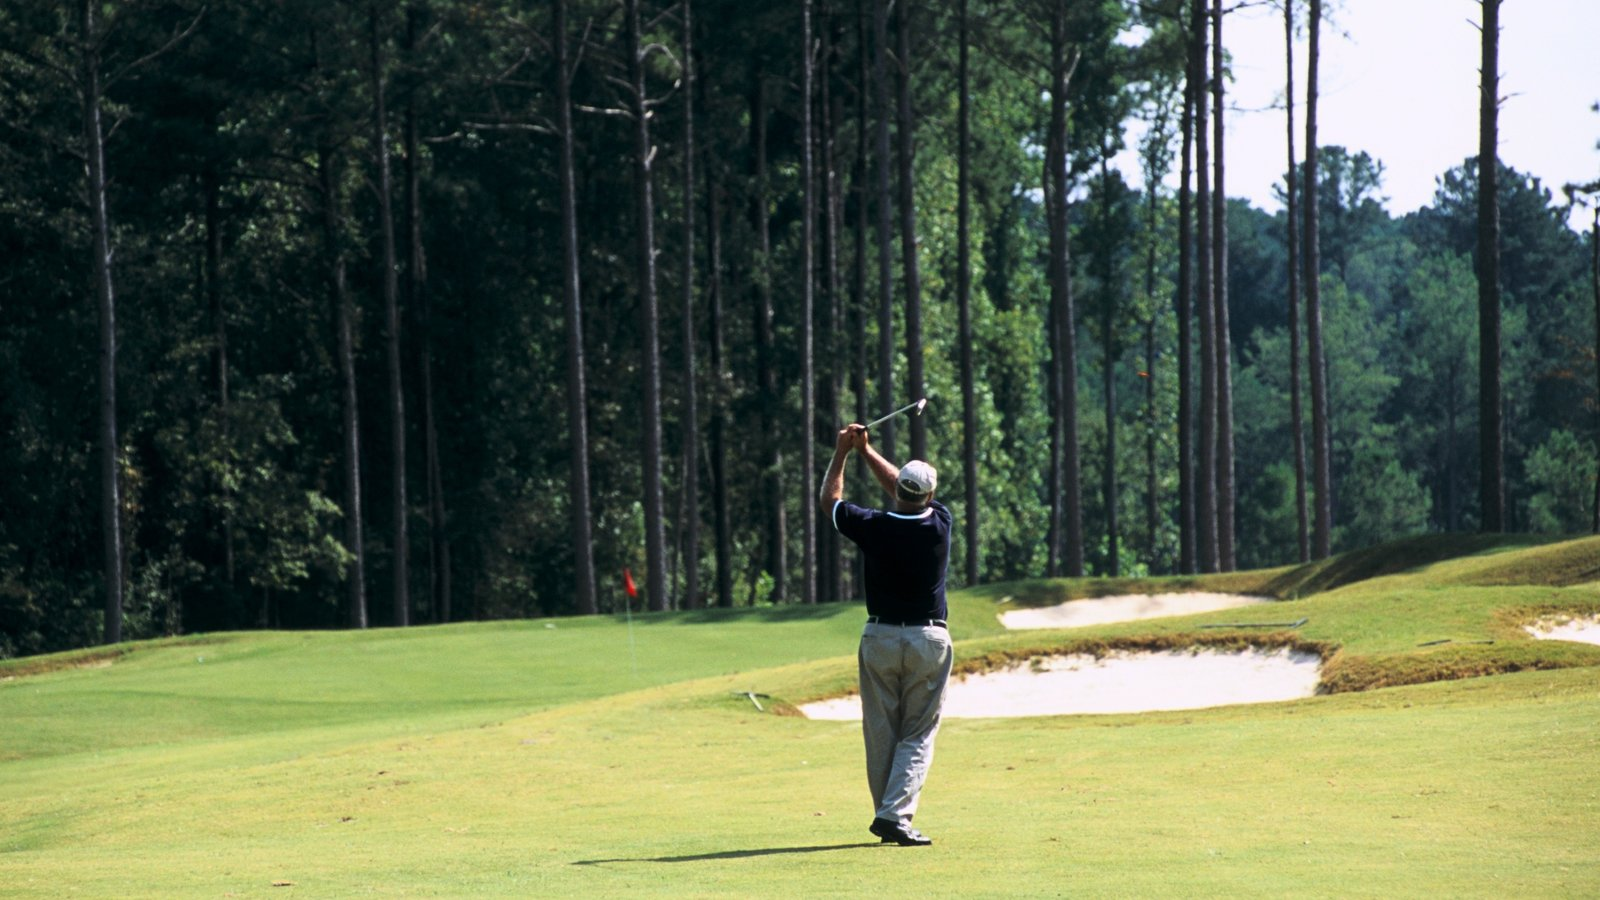 Augusta featuring forests and golf as well as an individual male